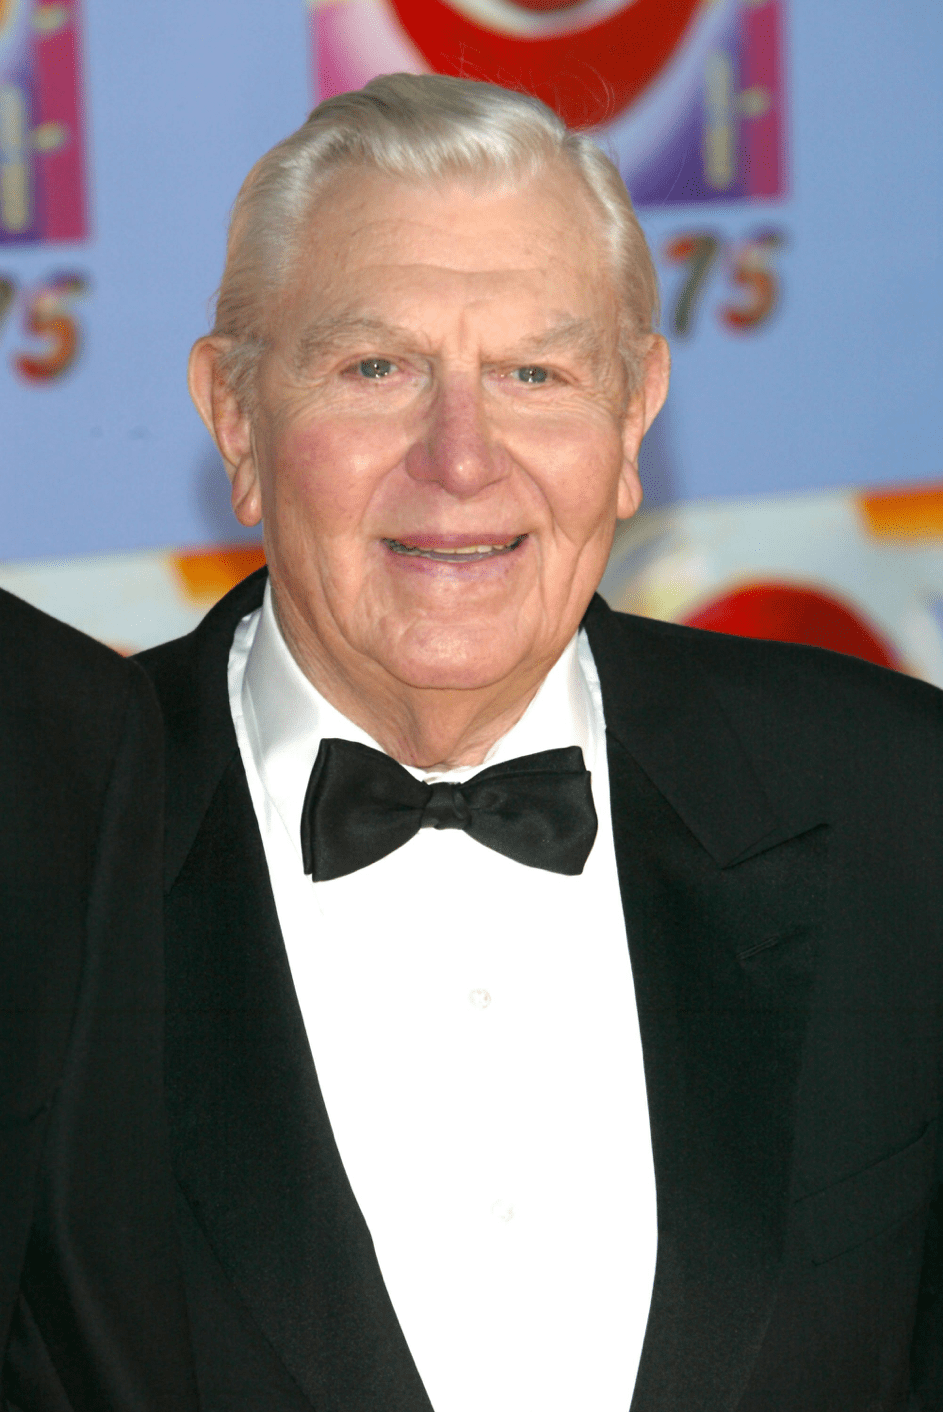 Schauspieler Andy Griffith am 2.11.2003 in New York. | Quelle: Getty Images